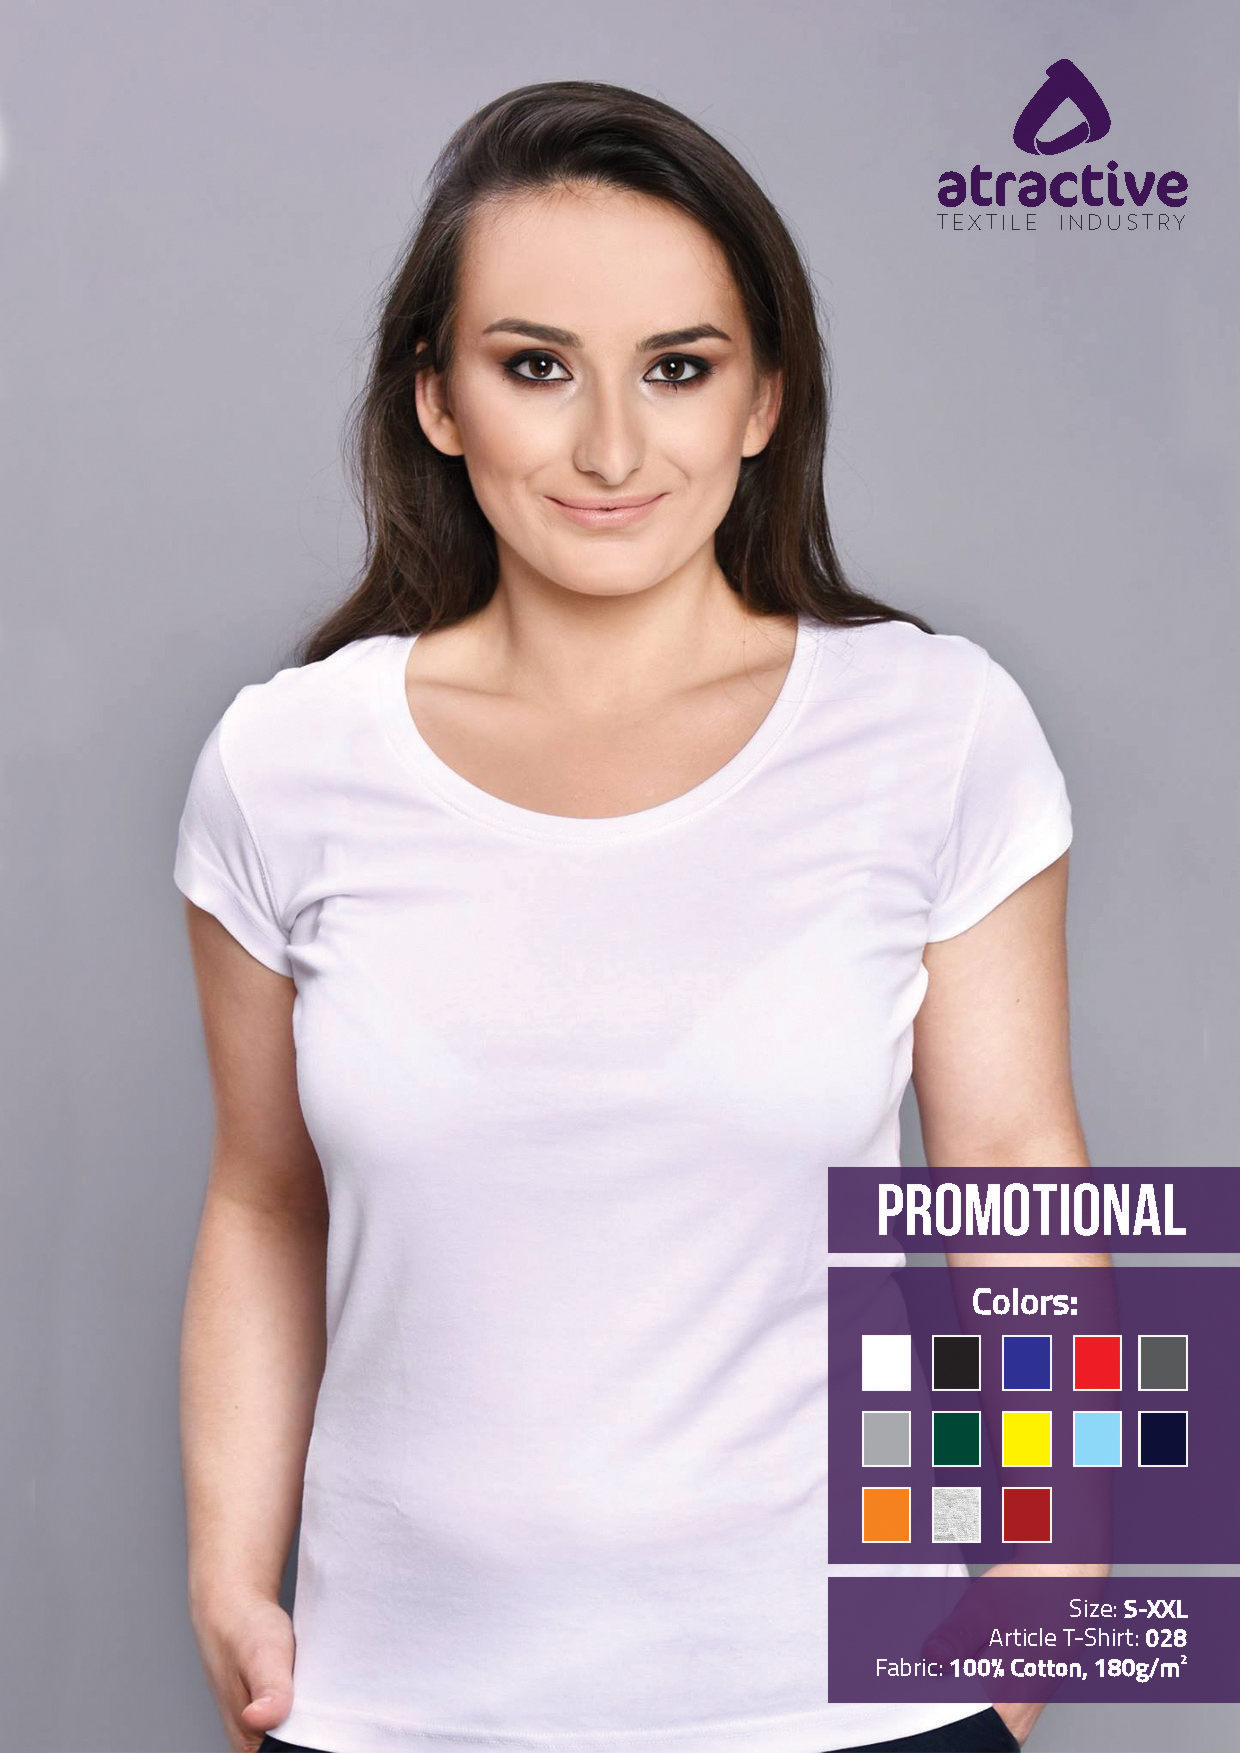 ArtaTex - Promotional